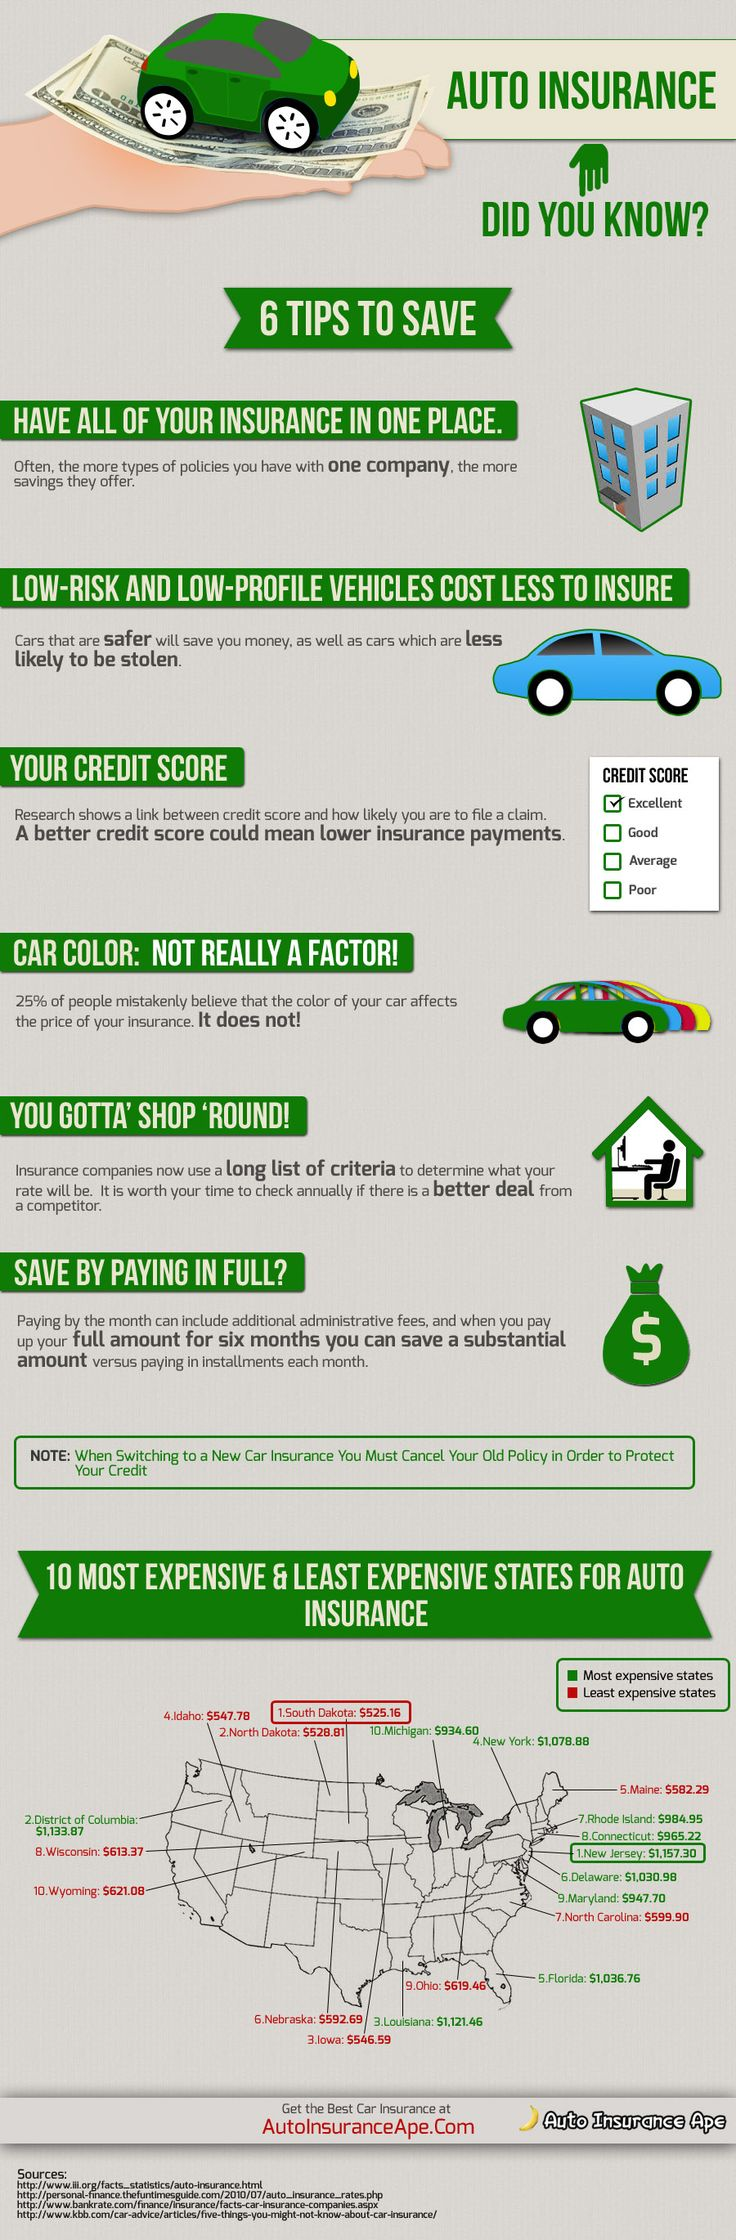 Car Insurance Quote Without Personal Details: 24 Best Fun Insurance Facts Images On Pinterest